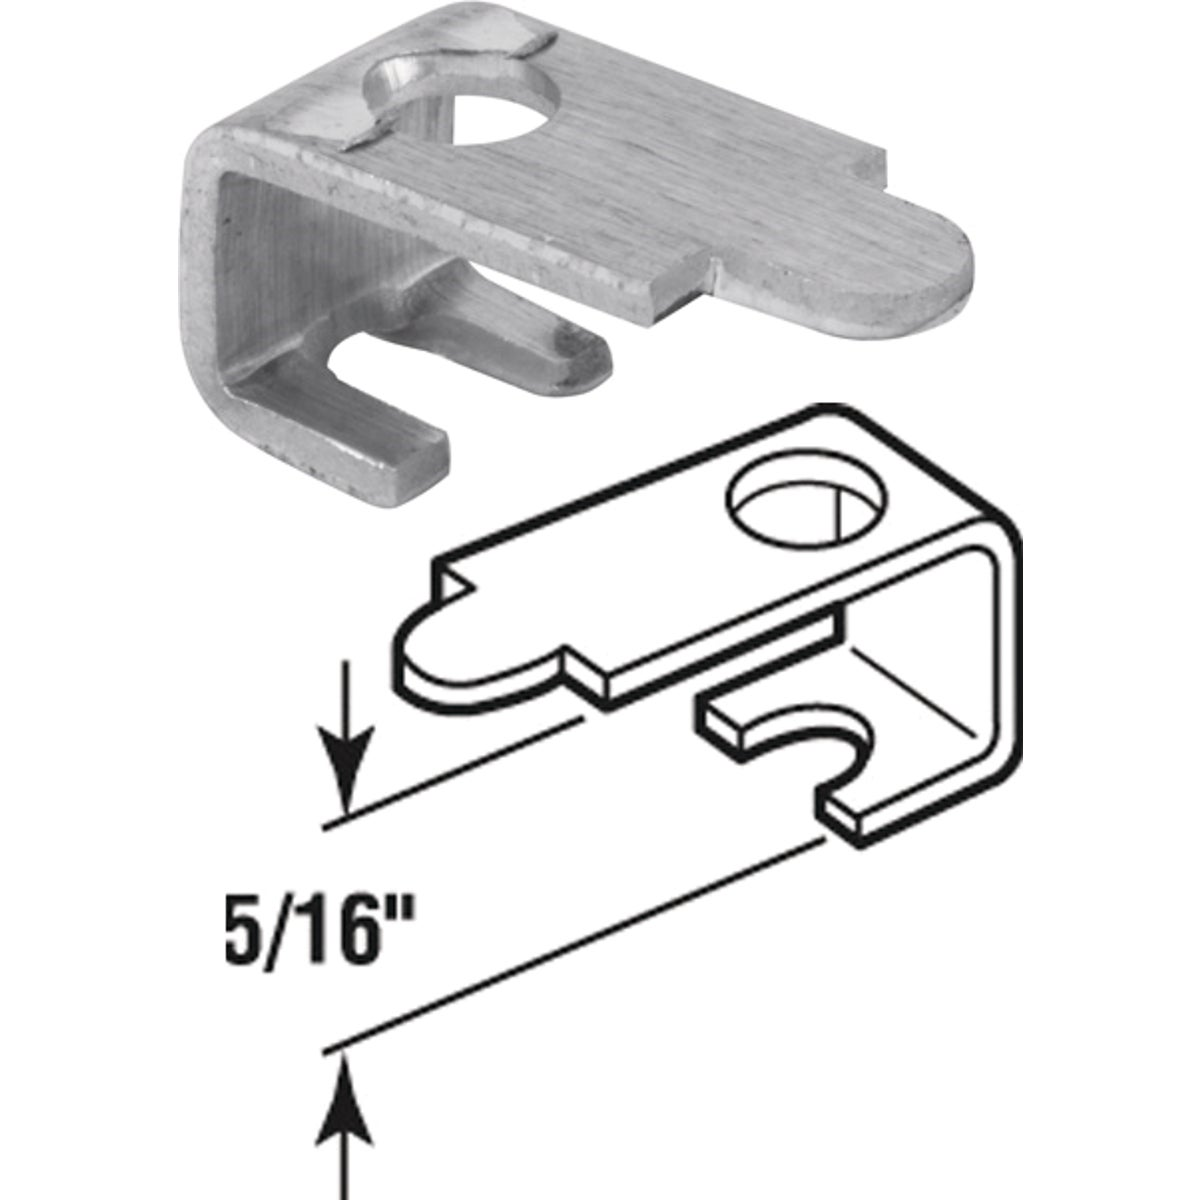 "5/16""WINDOW SCREEN CLIPS - 182933 by Prime Line Products"